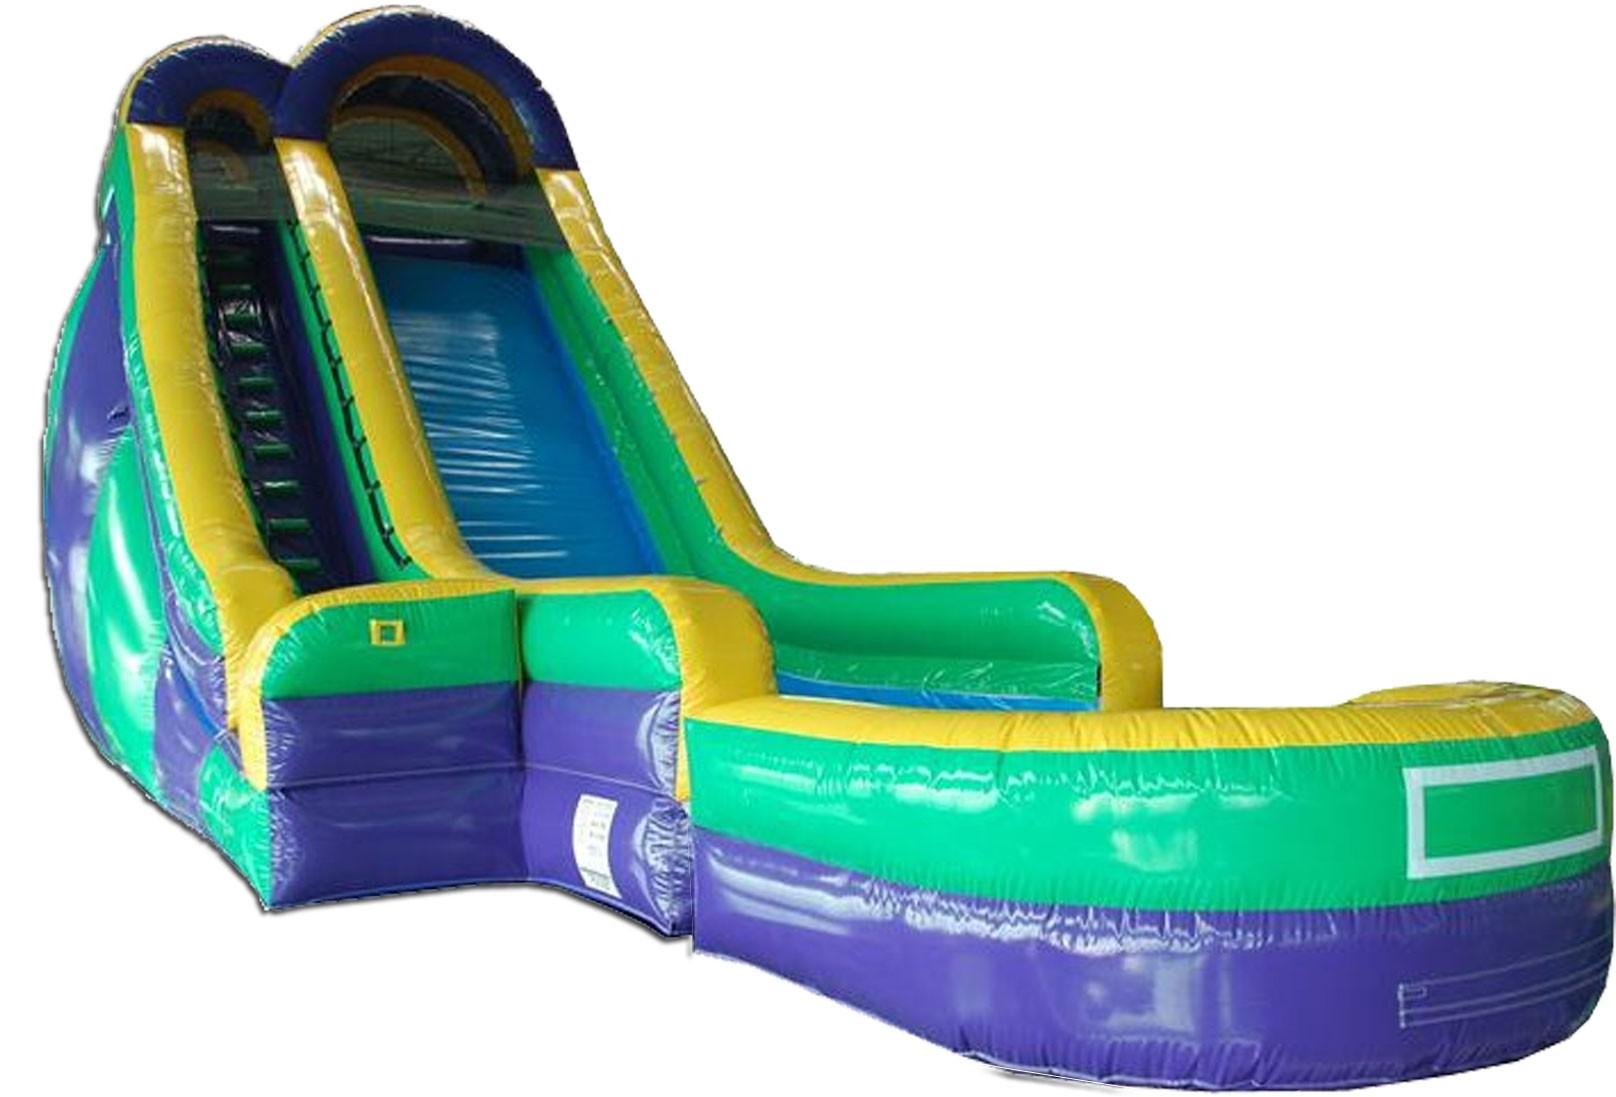 (B) 24ft Screamer Wet/Dry Slide